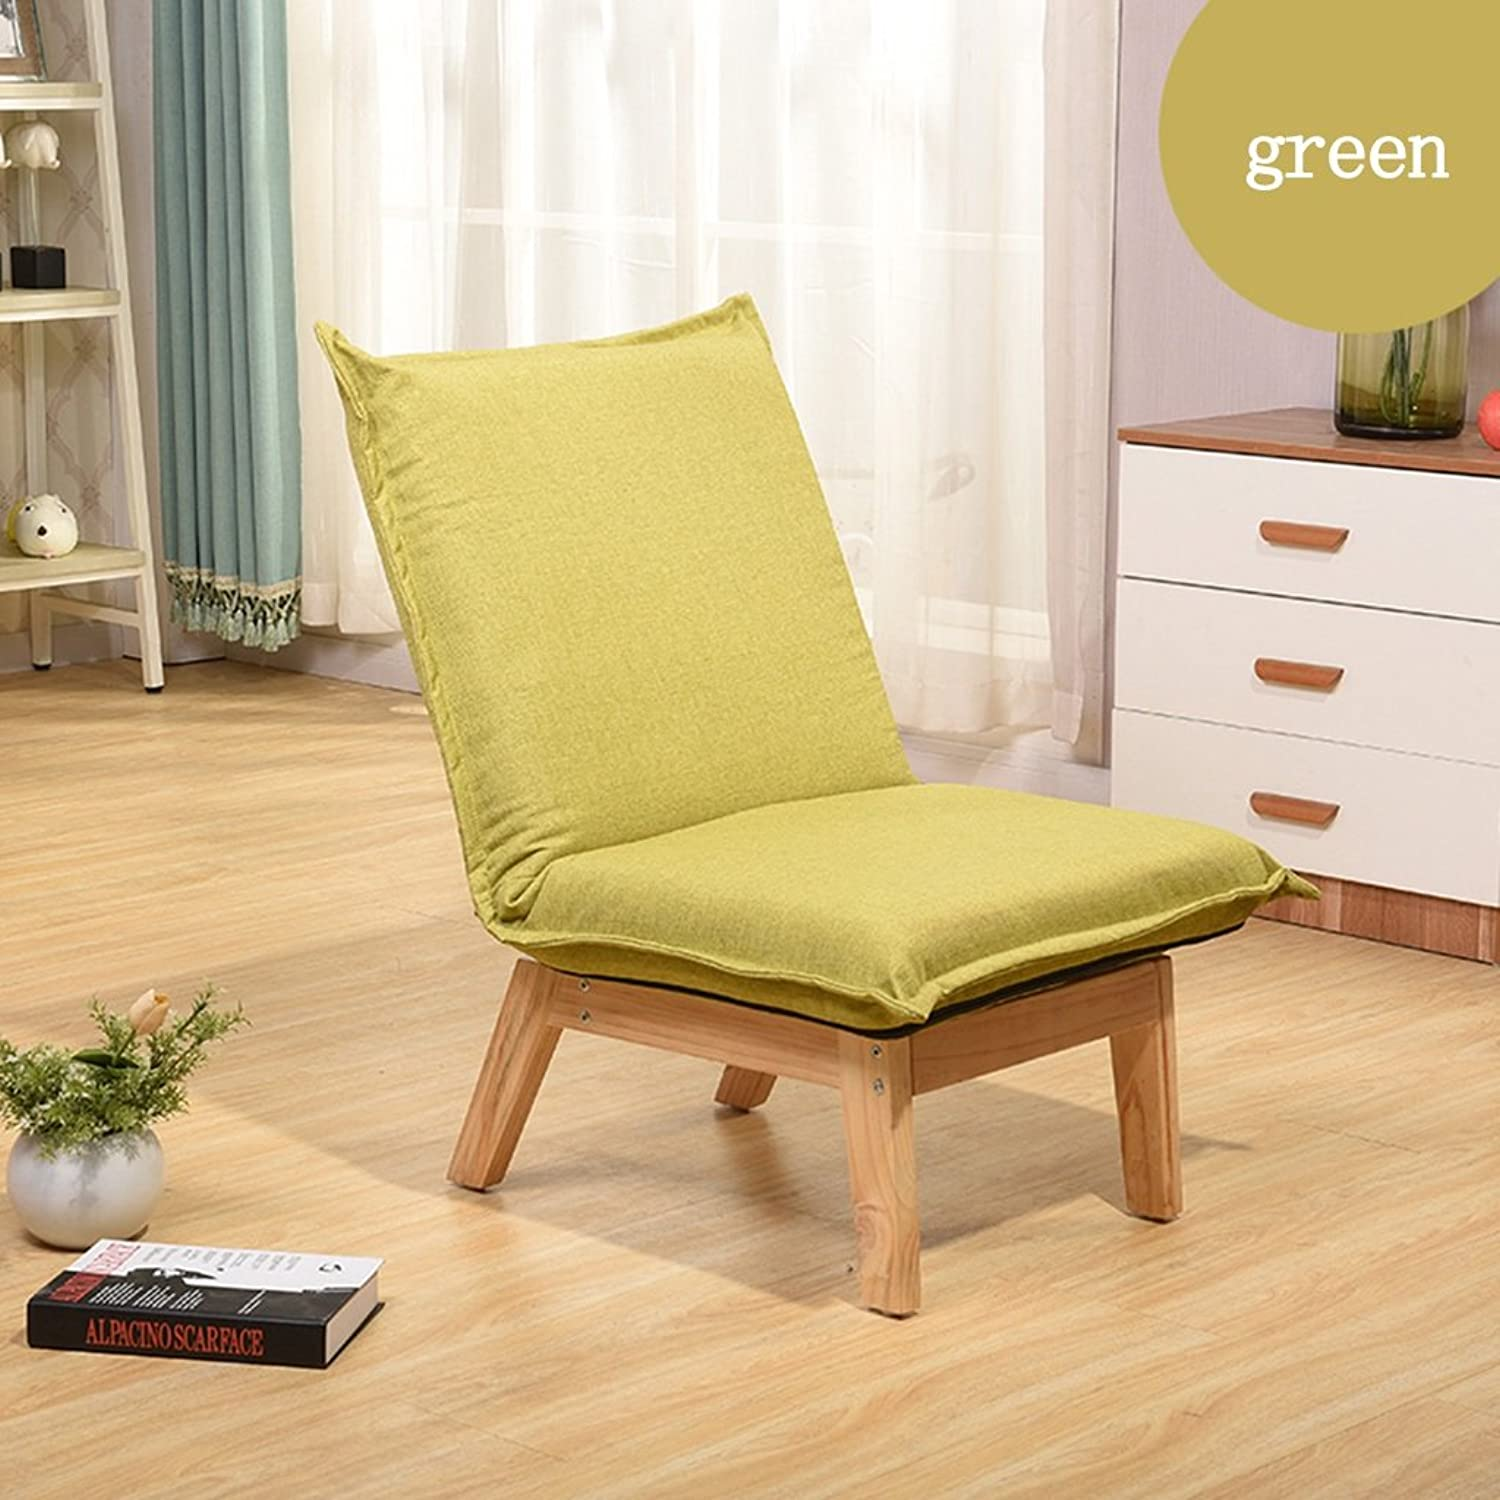 Lazy Sofa Casual Sofa Single Folding backrest Chair Chairs (color   Green)